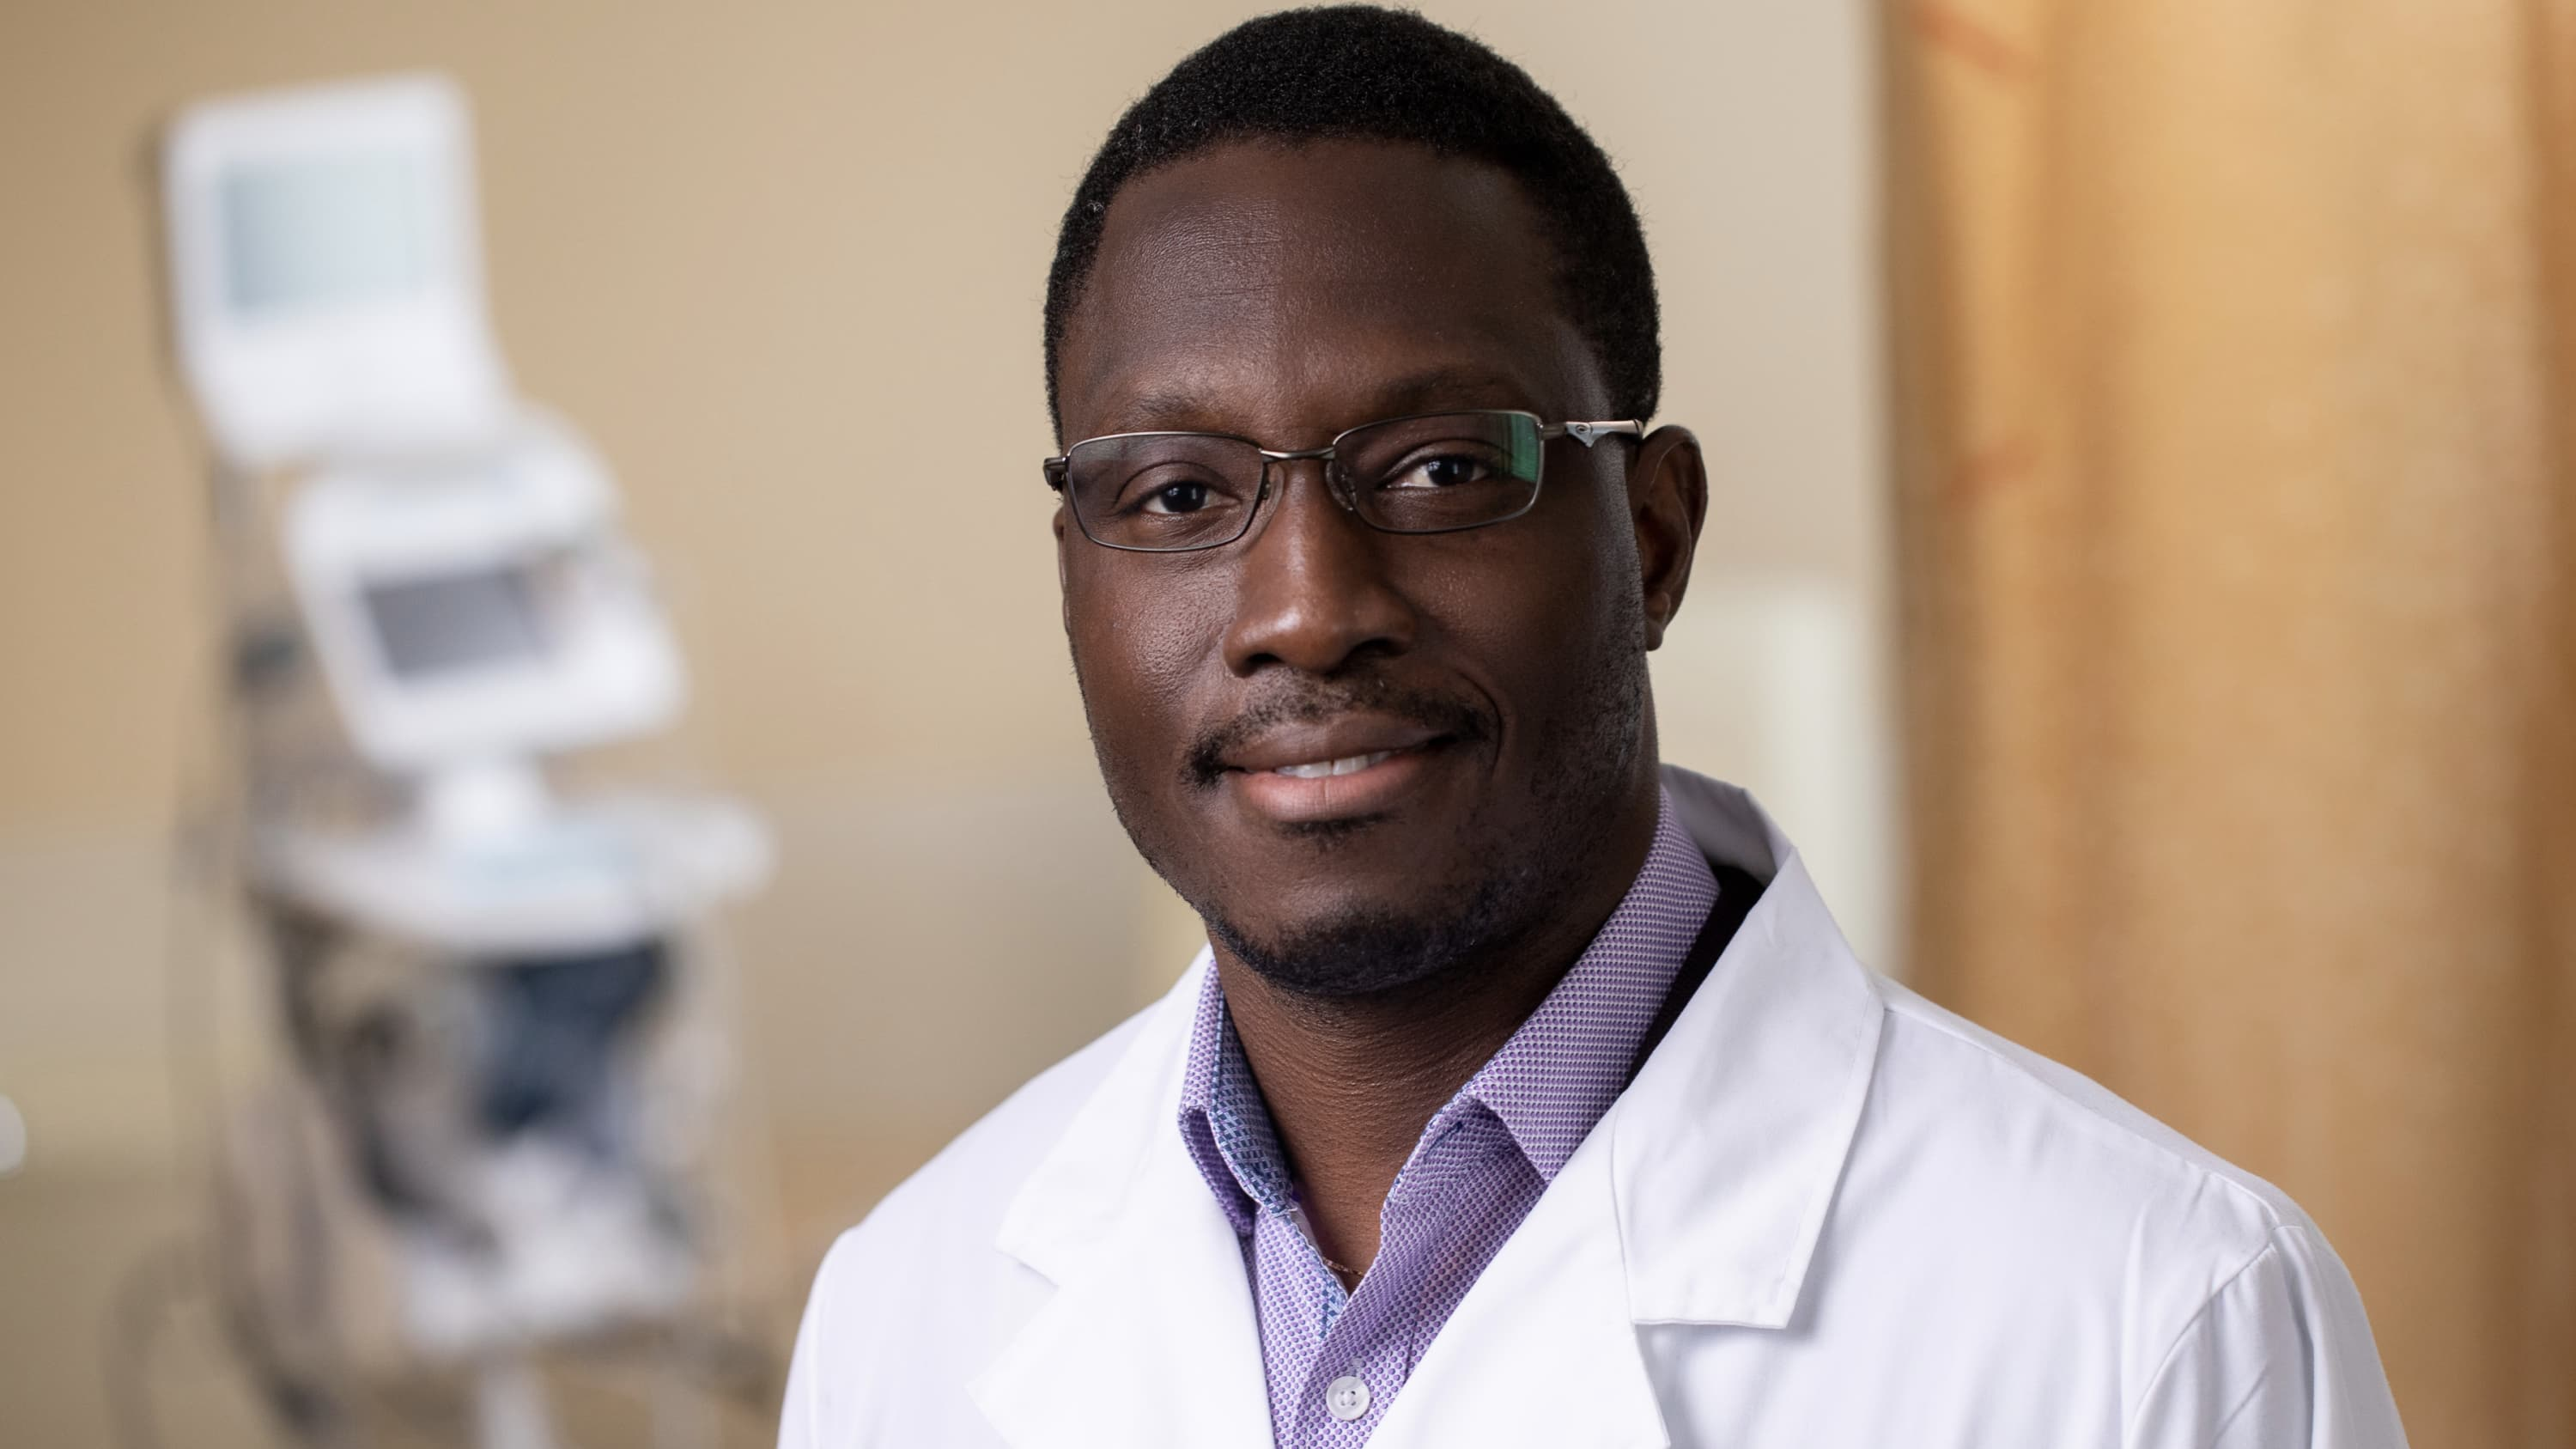 Dr. Ogbuago led clinical trials to test COVID-19 vaccines